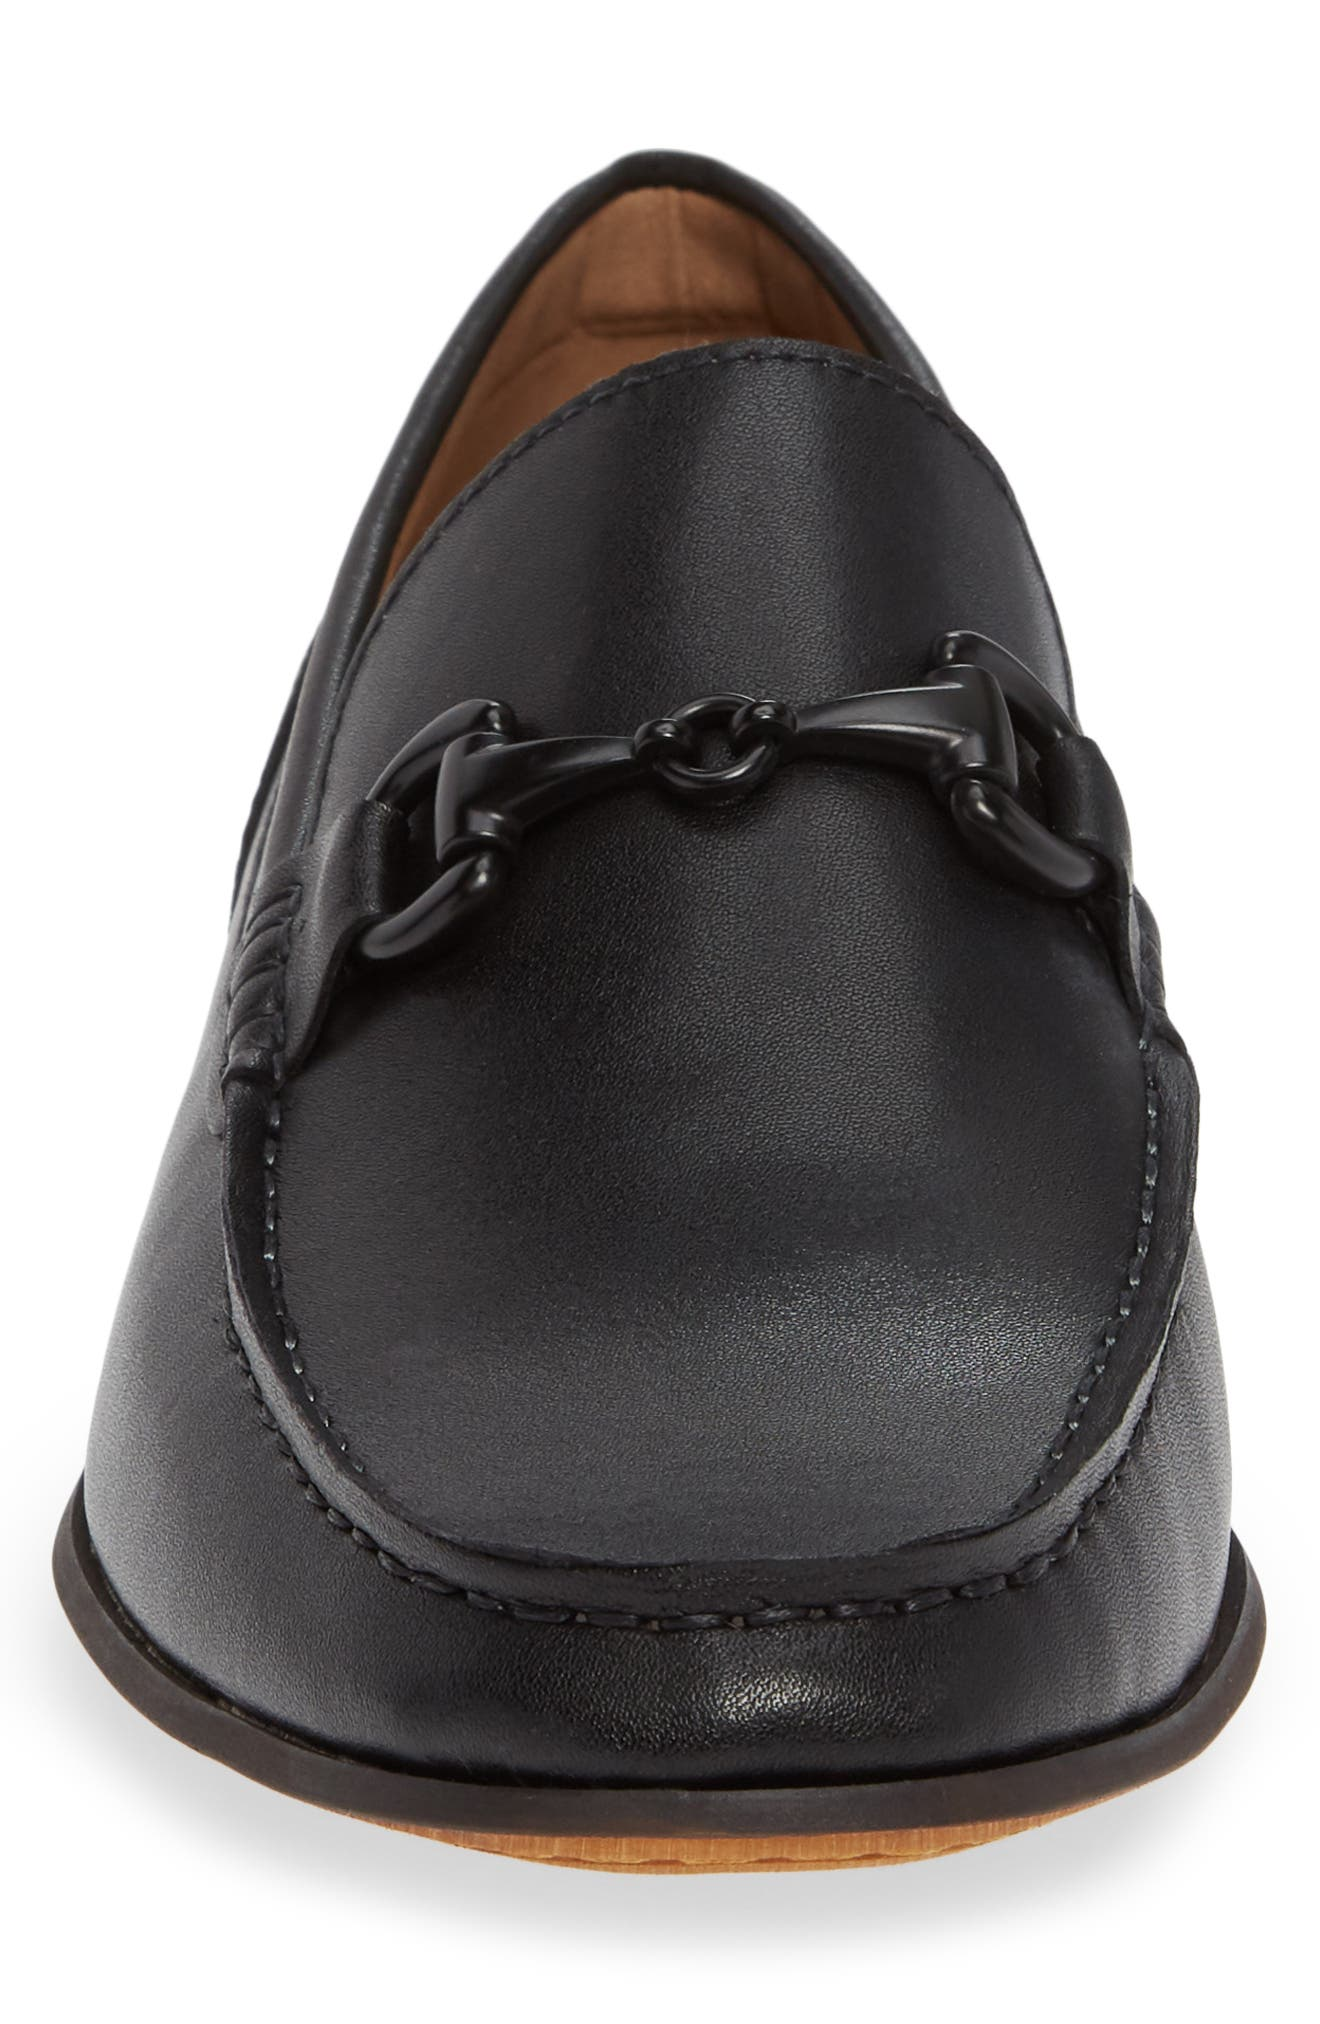 Crespo Loafer,                             Alternate thumbnail 4, color,                             BLACK SYNTHETIC LEATHER